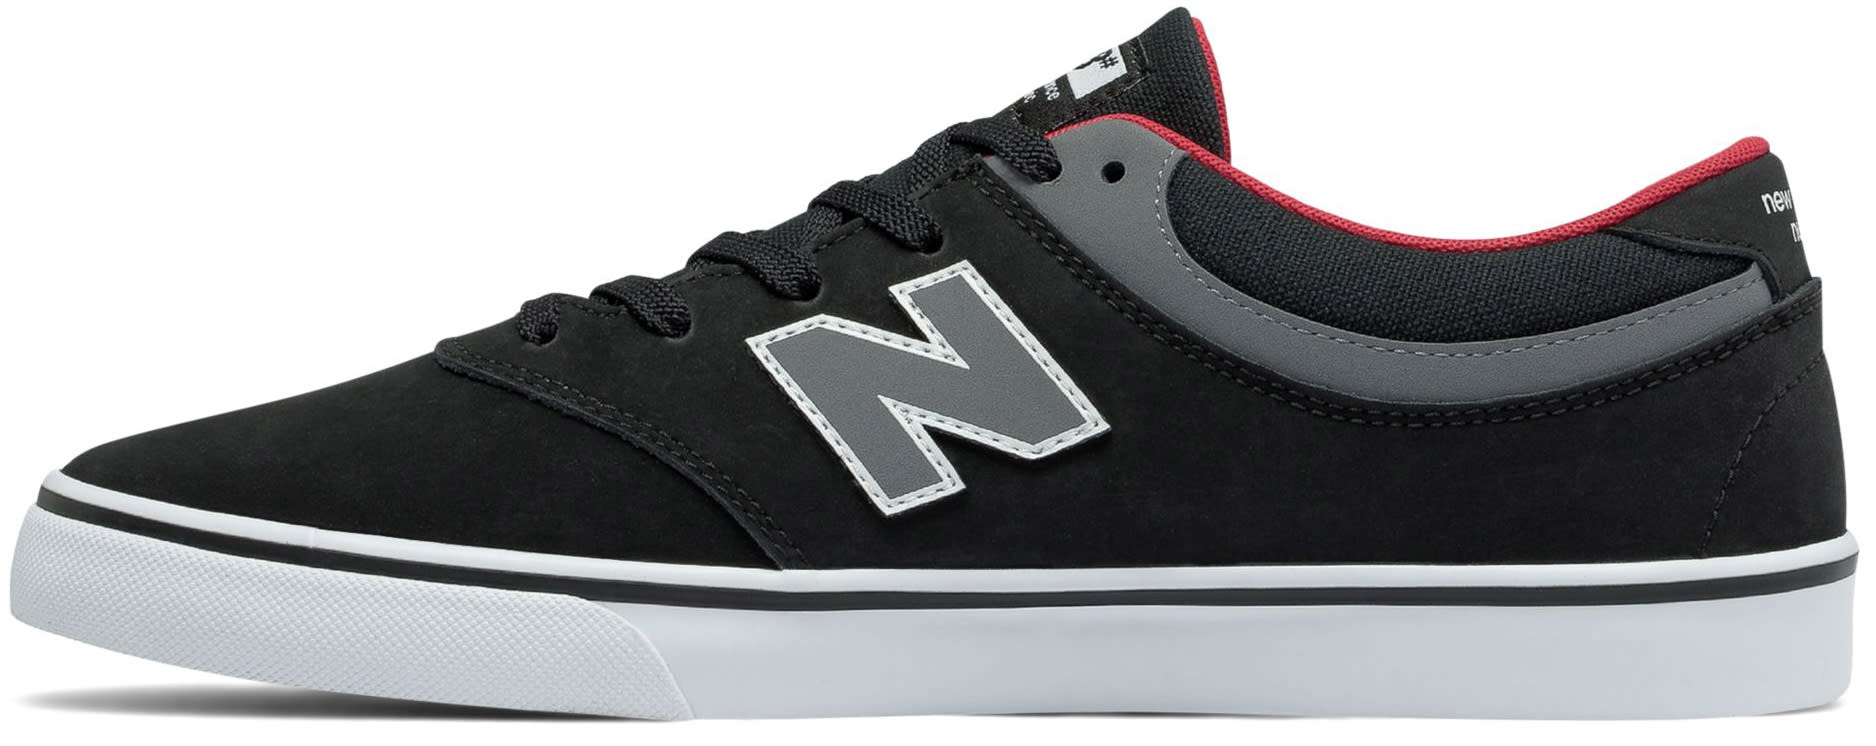 17eb81a4671 New Balance Numeric Quincy 254 Skate Shoes - thumbnail 2